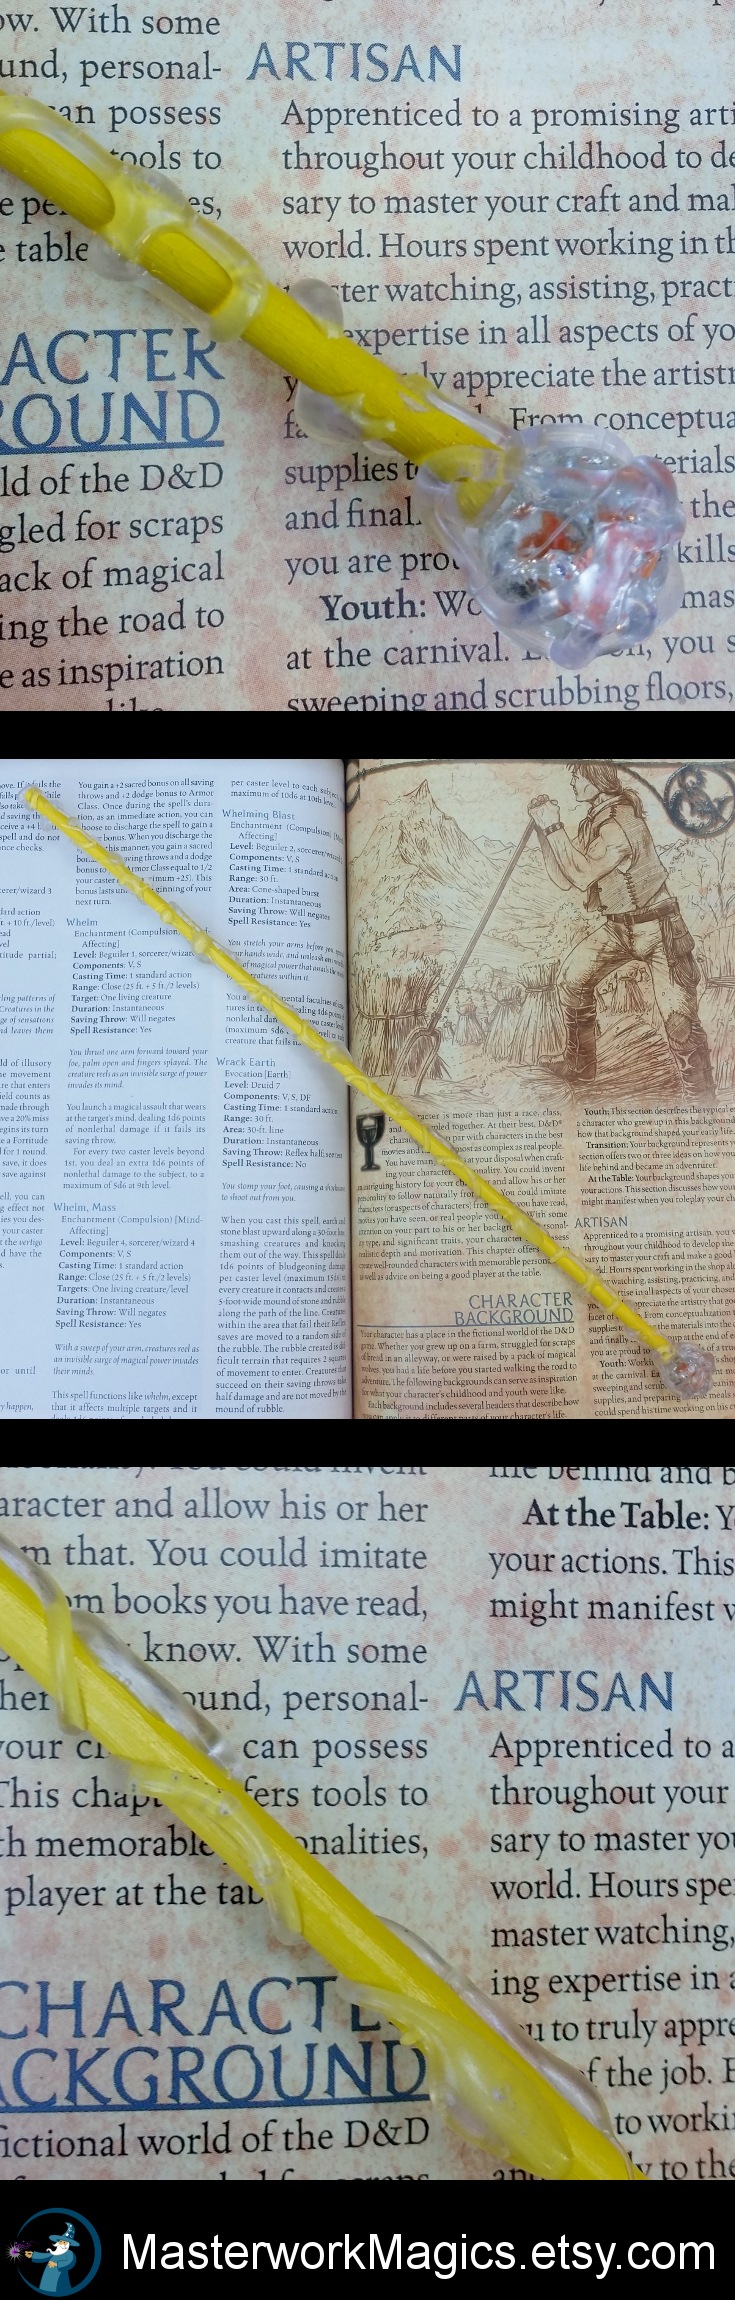 Yellow magic wand with orange gem from the Starlight collection by Masterwork Magics. #magic #wand